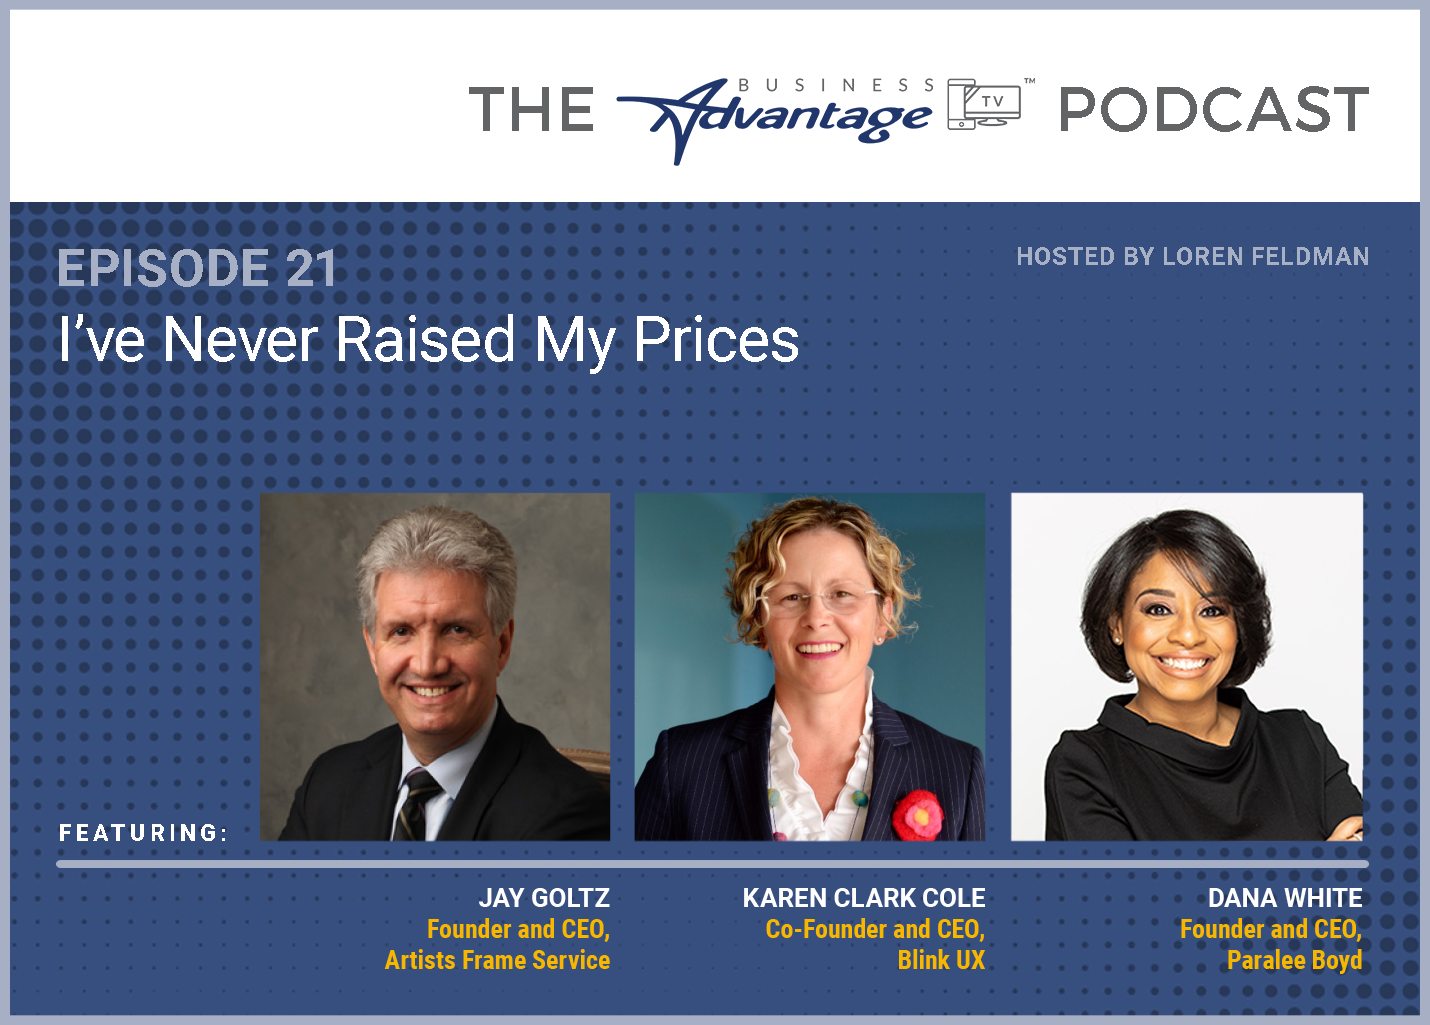 Episode 21: I've Never Raised My Prices